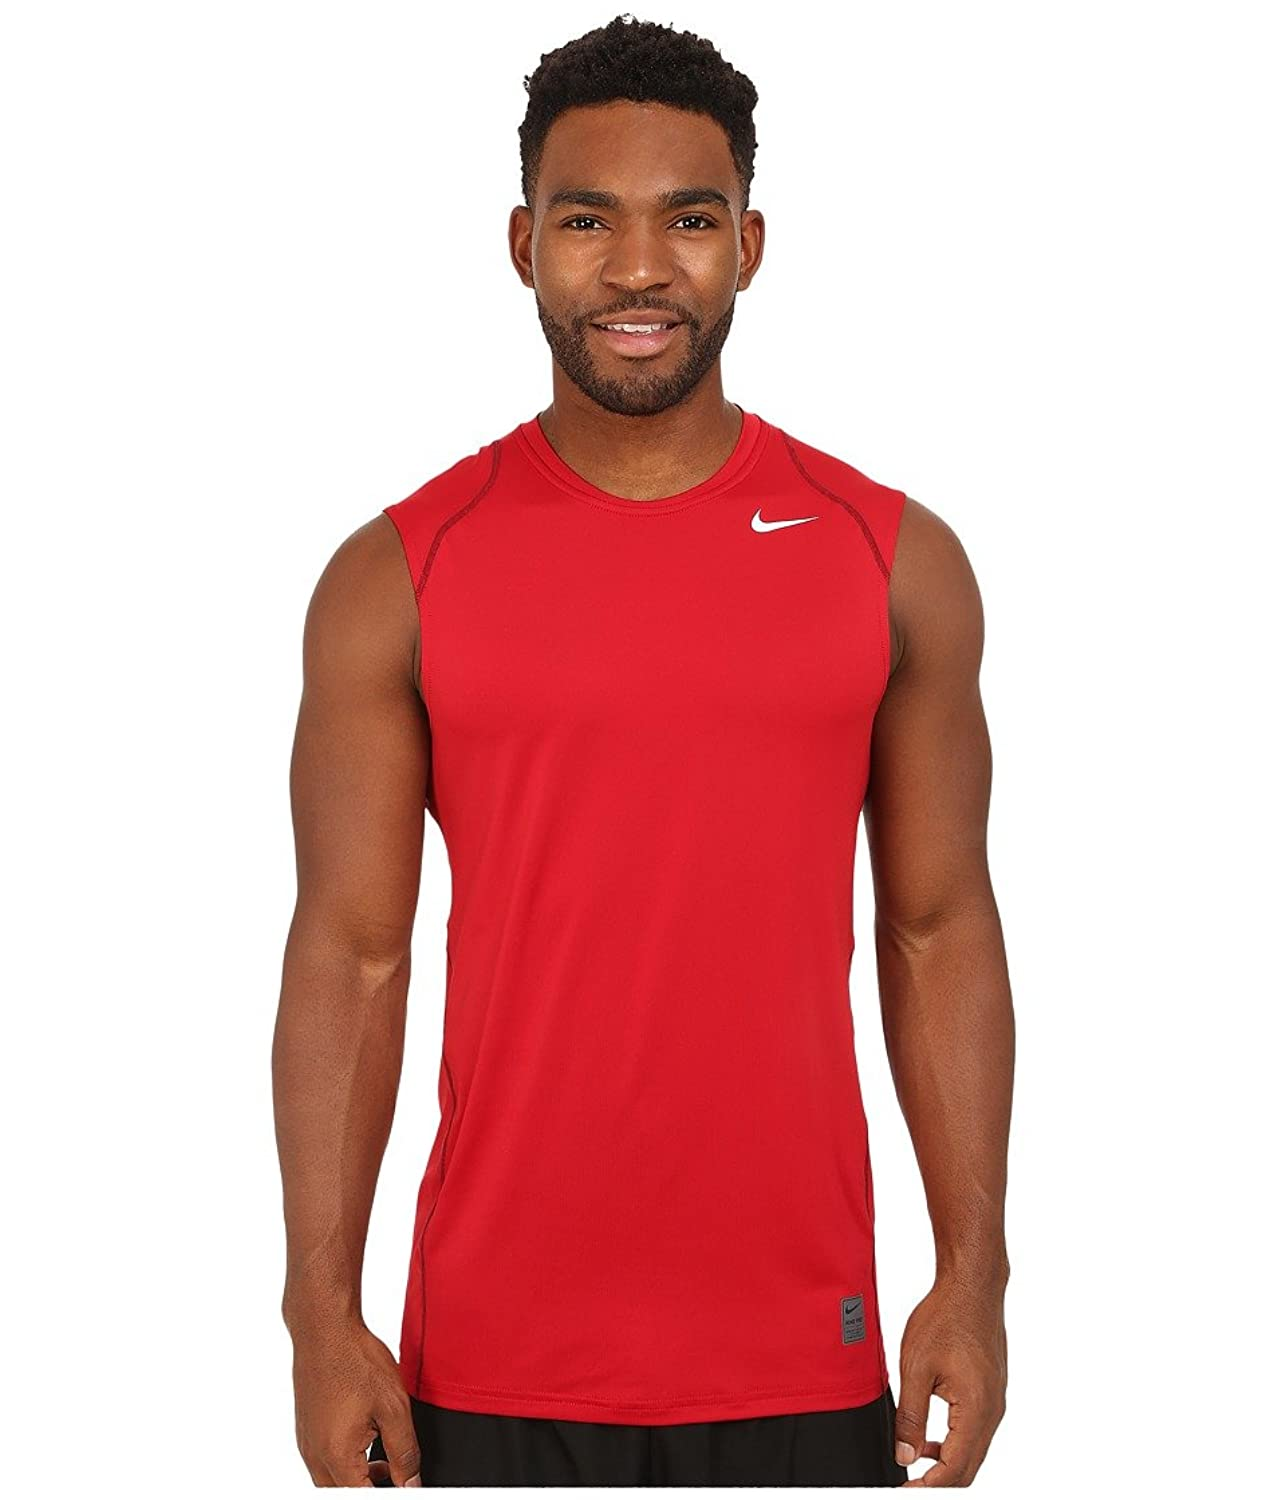 Nike mens dri fit pro cool fitted sleeveless training t for Nike men s pro cool sleeveless shirt